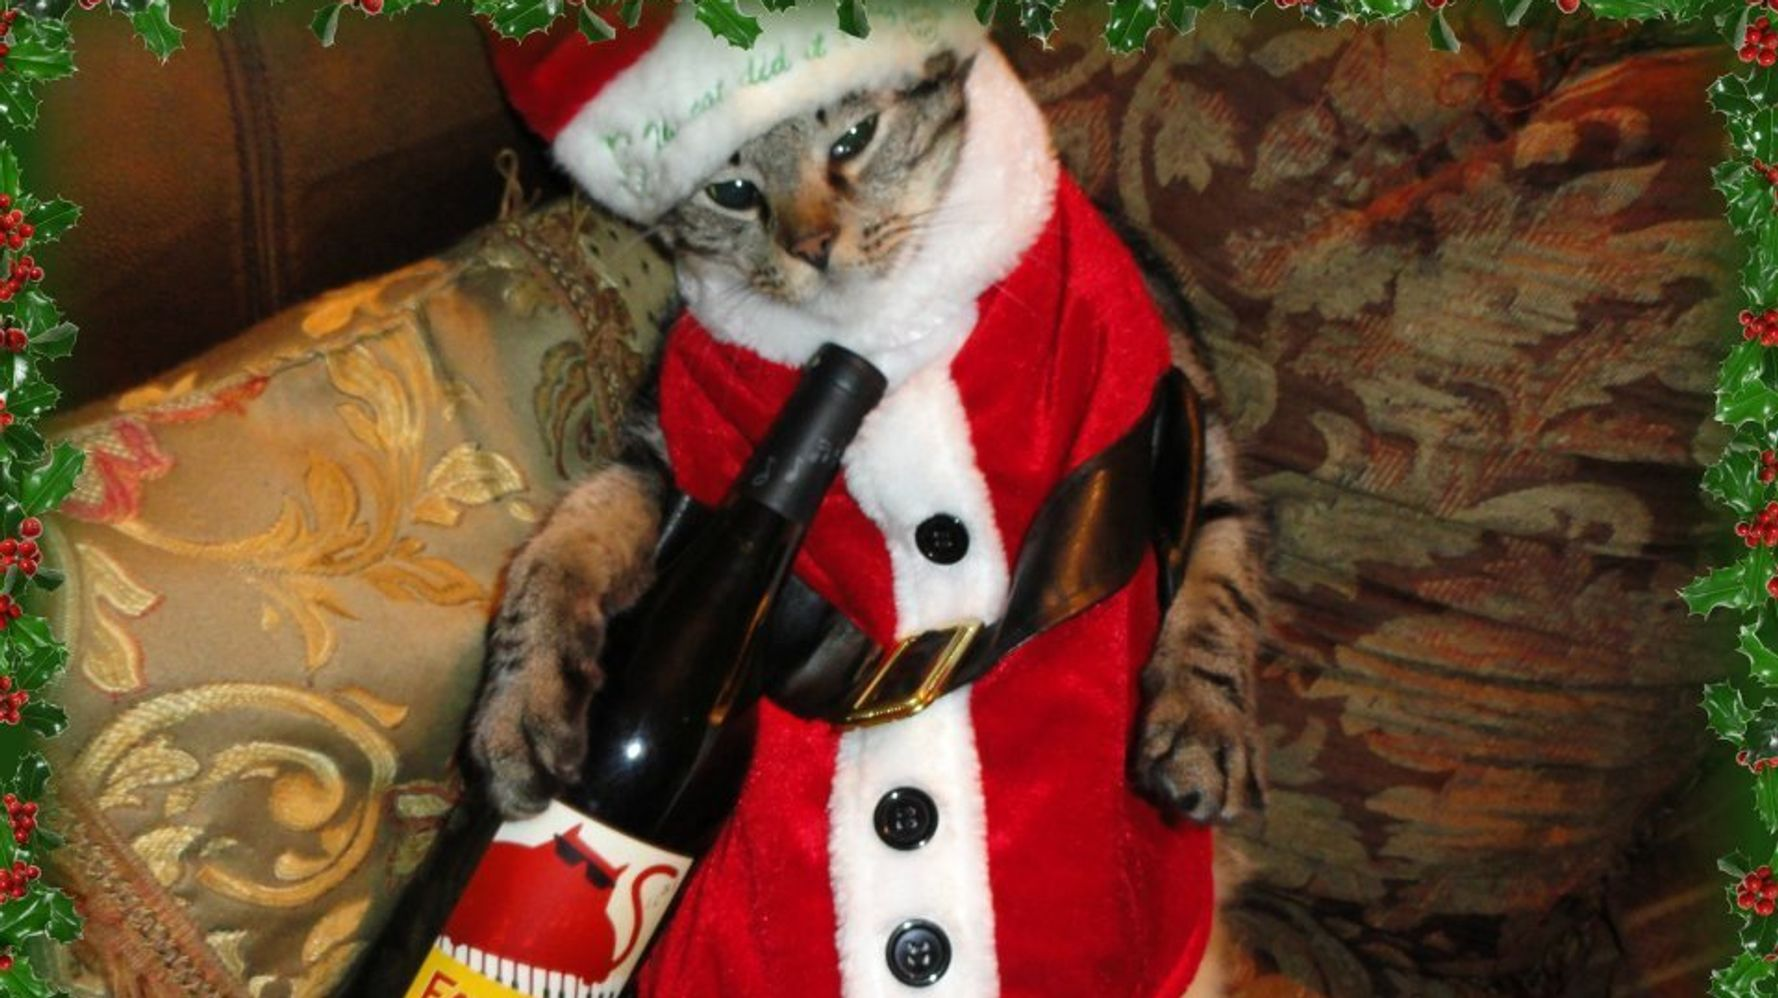 huffingtonpost.com on Flipboard: Cats Dressed Up For Christmas Are The  Greatest Gift This Holiday Season